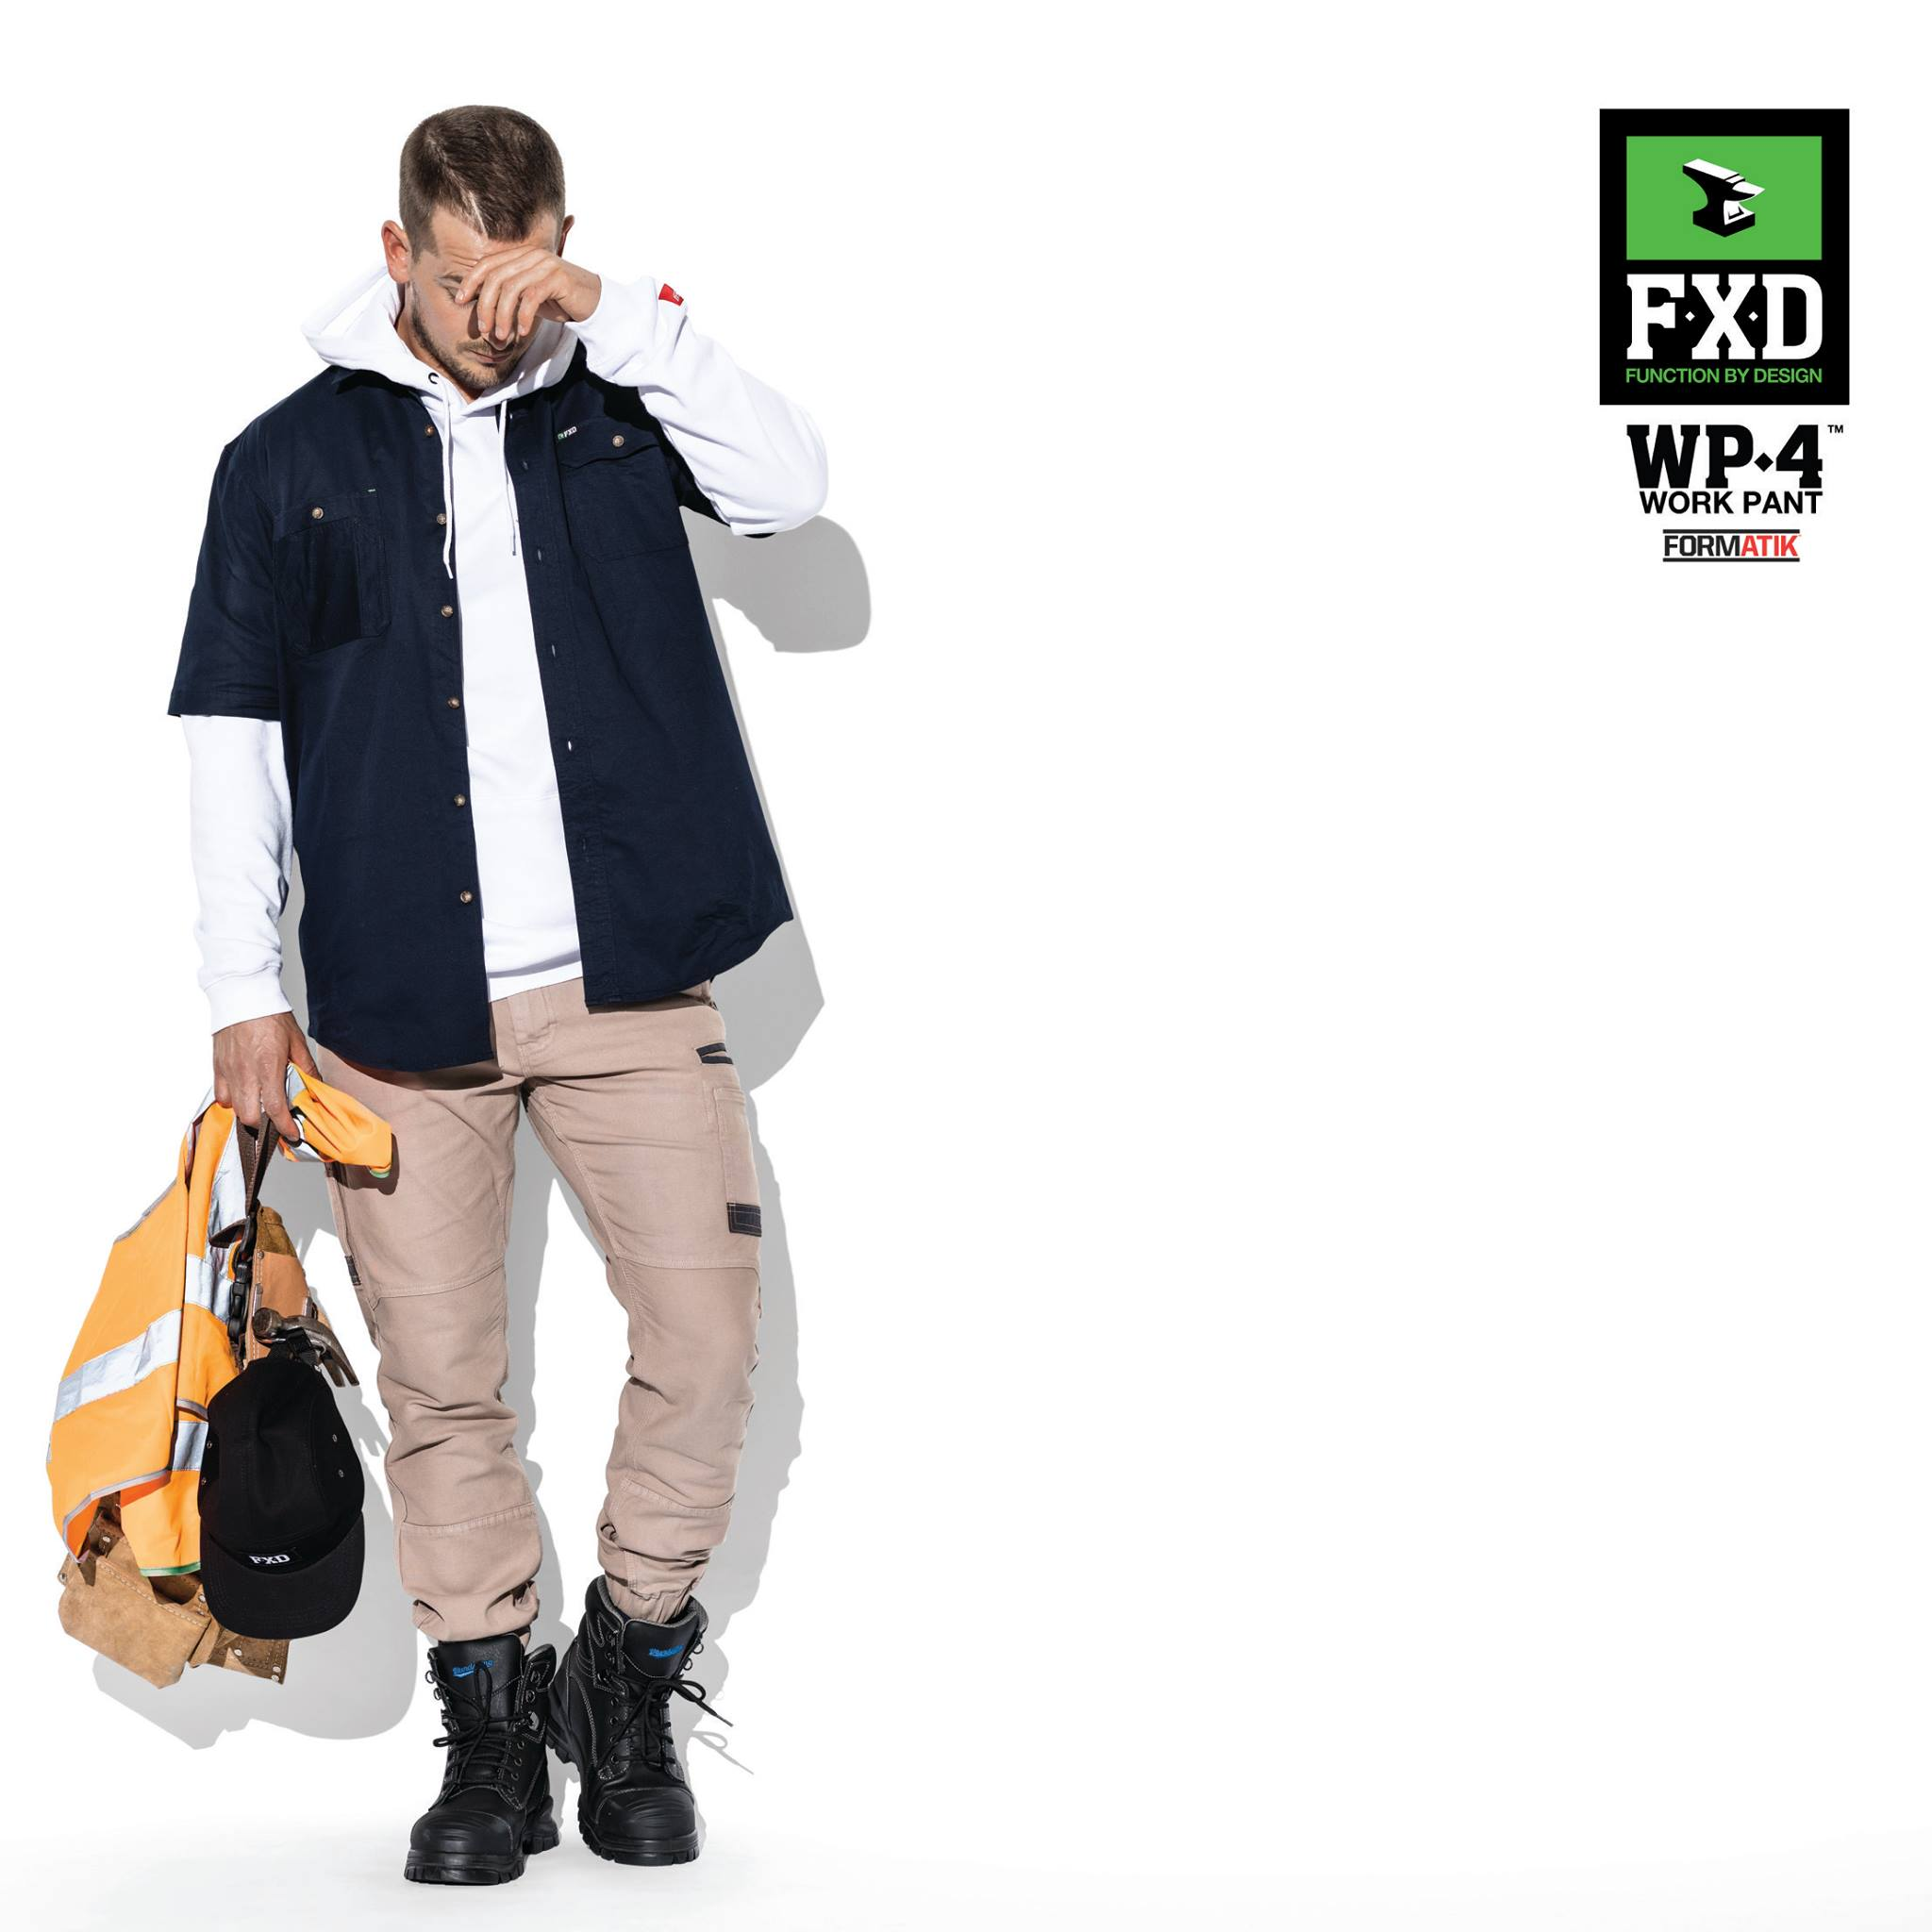 FXD WP-4 360 Degree Stretch Cuffed Work Pant   Features:  - HEAVY DUTY FORMATIK™ MULTI-DIRECTIONAL STRETCH COTTON - DURA500™ ADVANCE TECHNOLOGY POLYESTER ABRASION PANELS